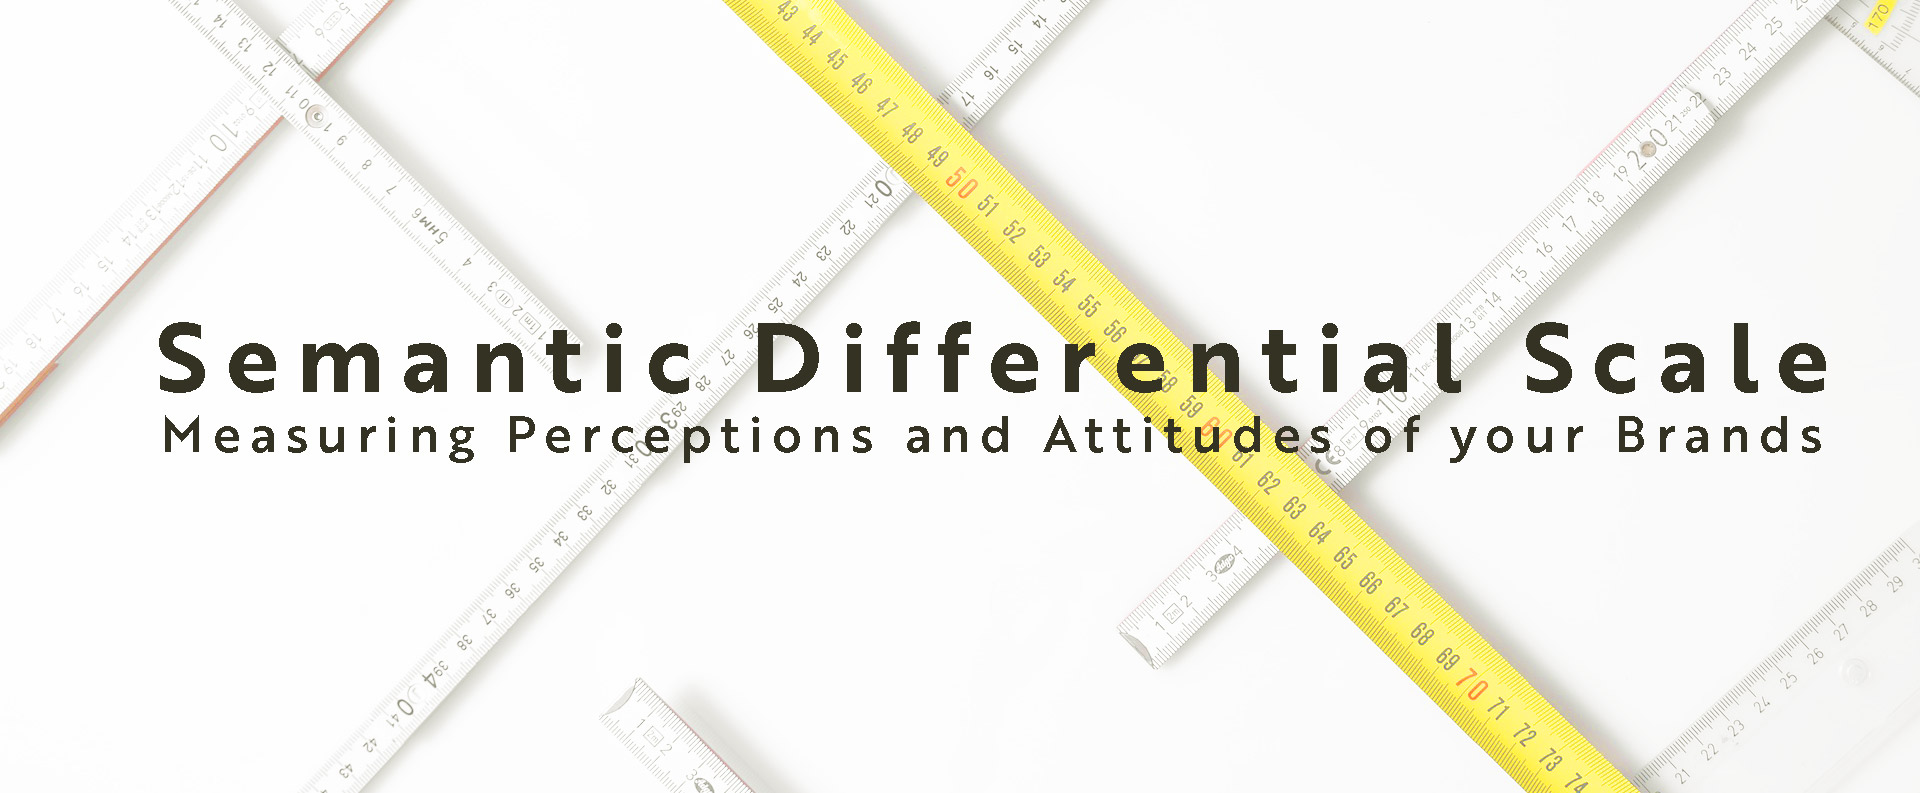 Semantic Differential Scale: Measuring Perceptions and Attitudes of your Brand